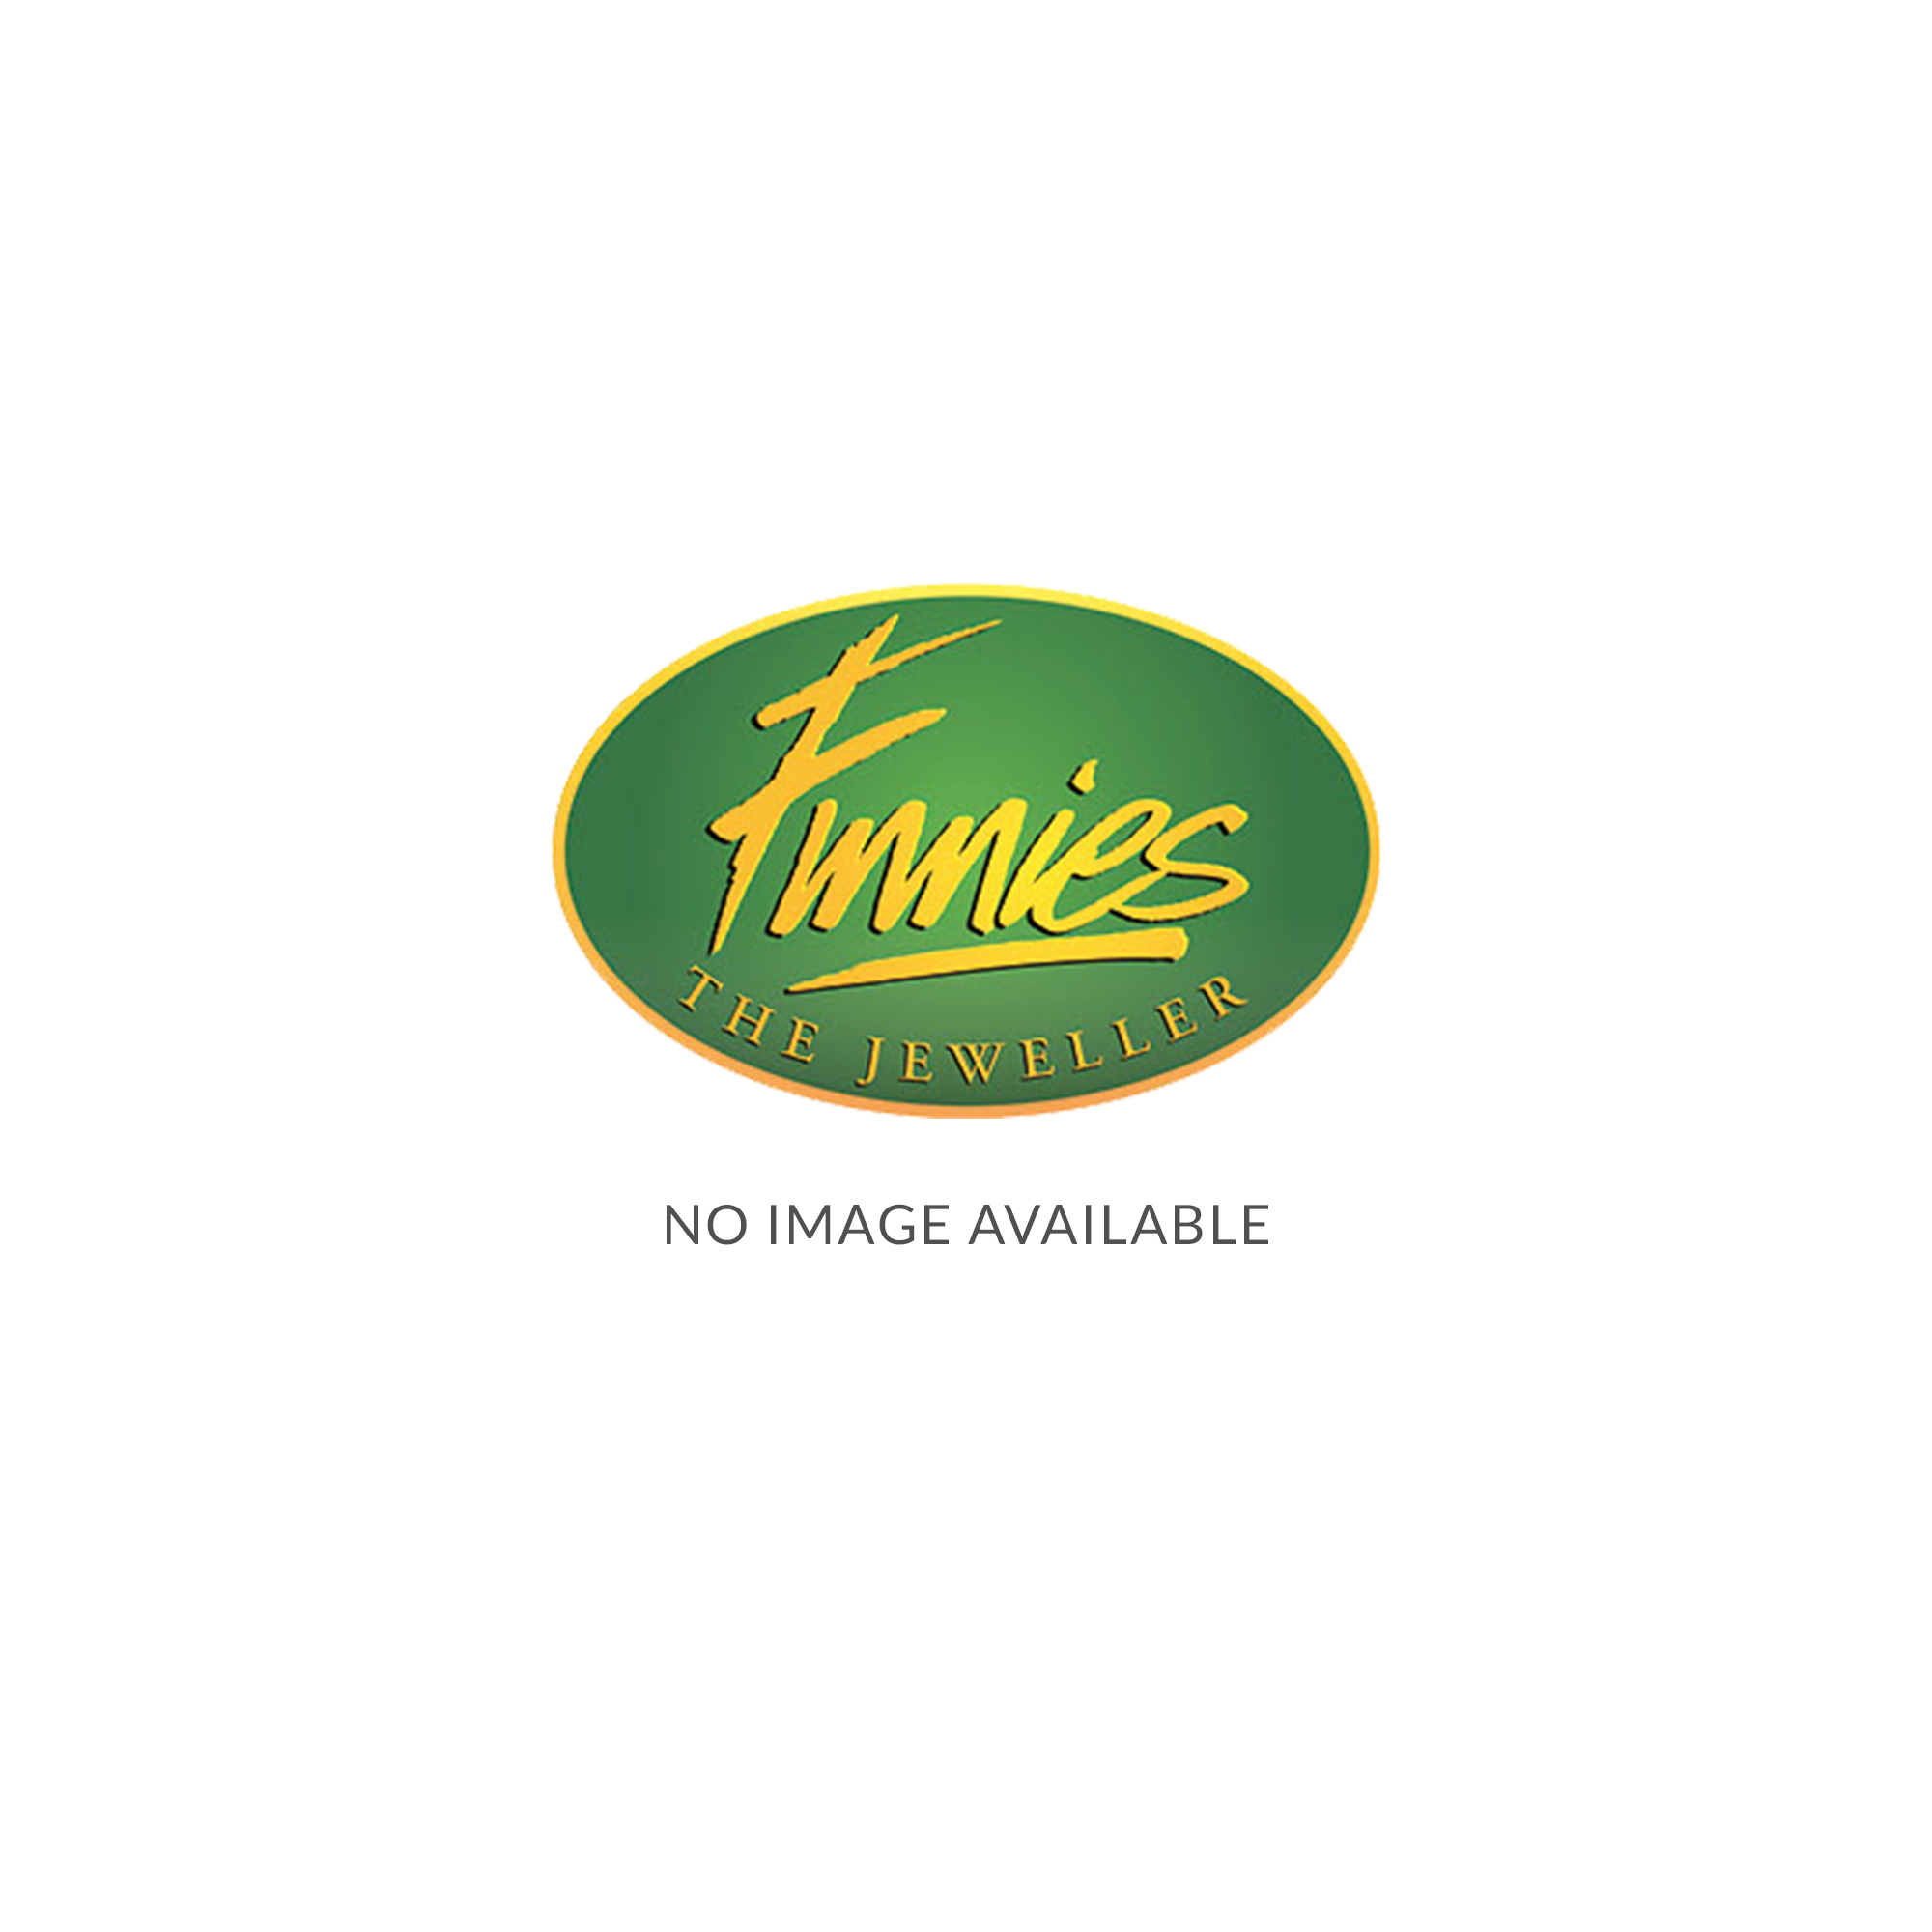 finnies the jewellers childs 9ct yellow gold signet